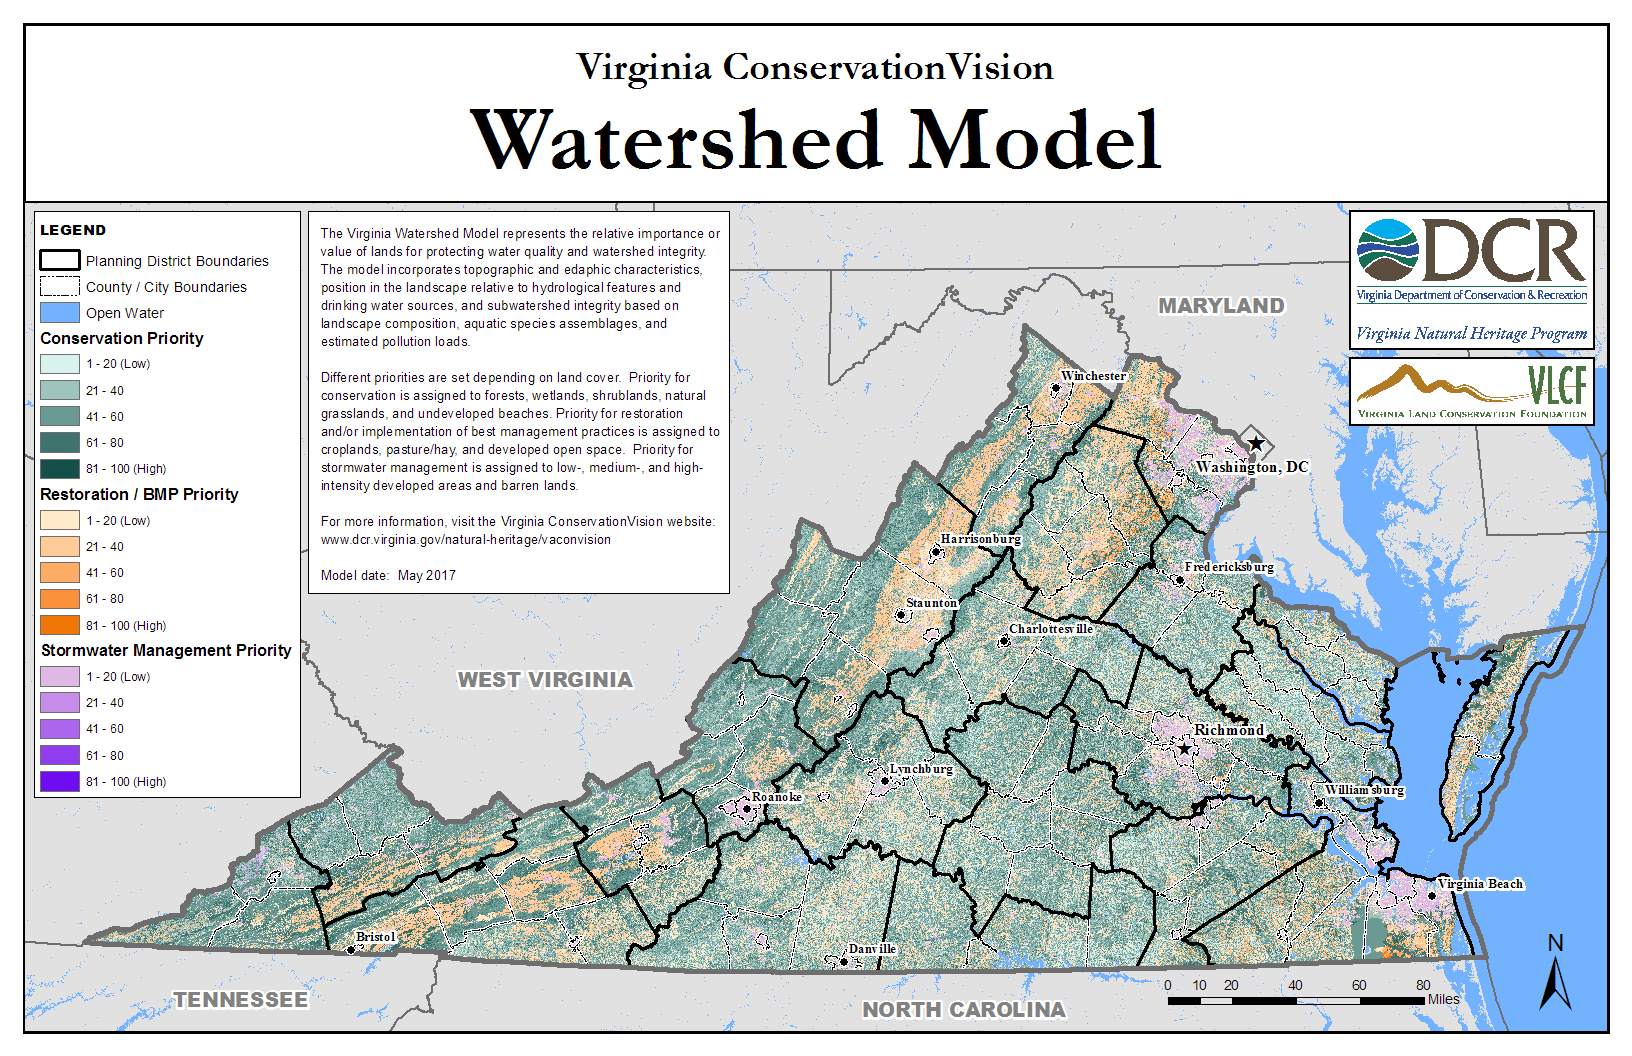 Virginia Conservationvision Watershed Model